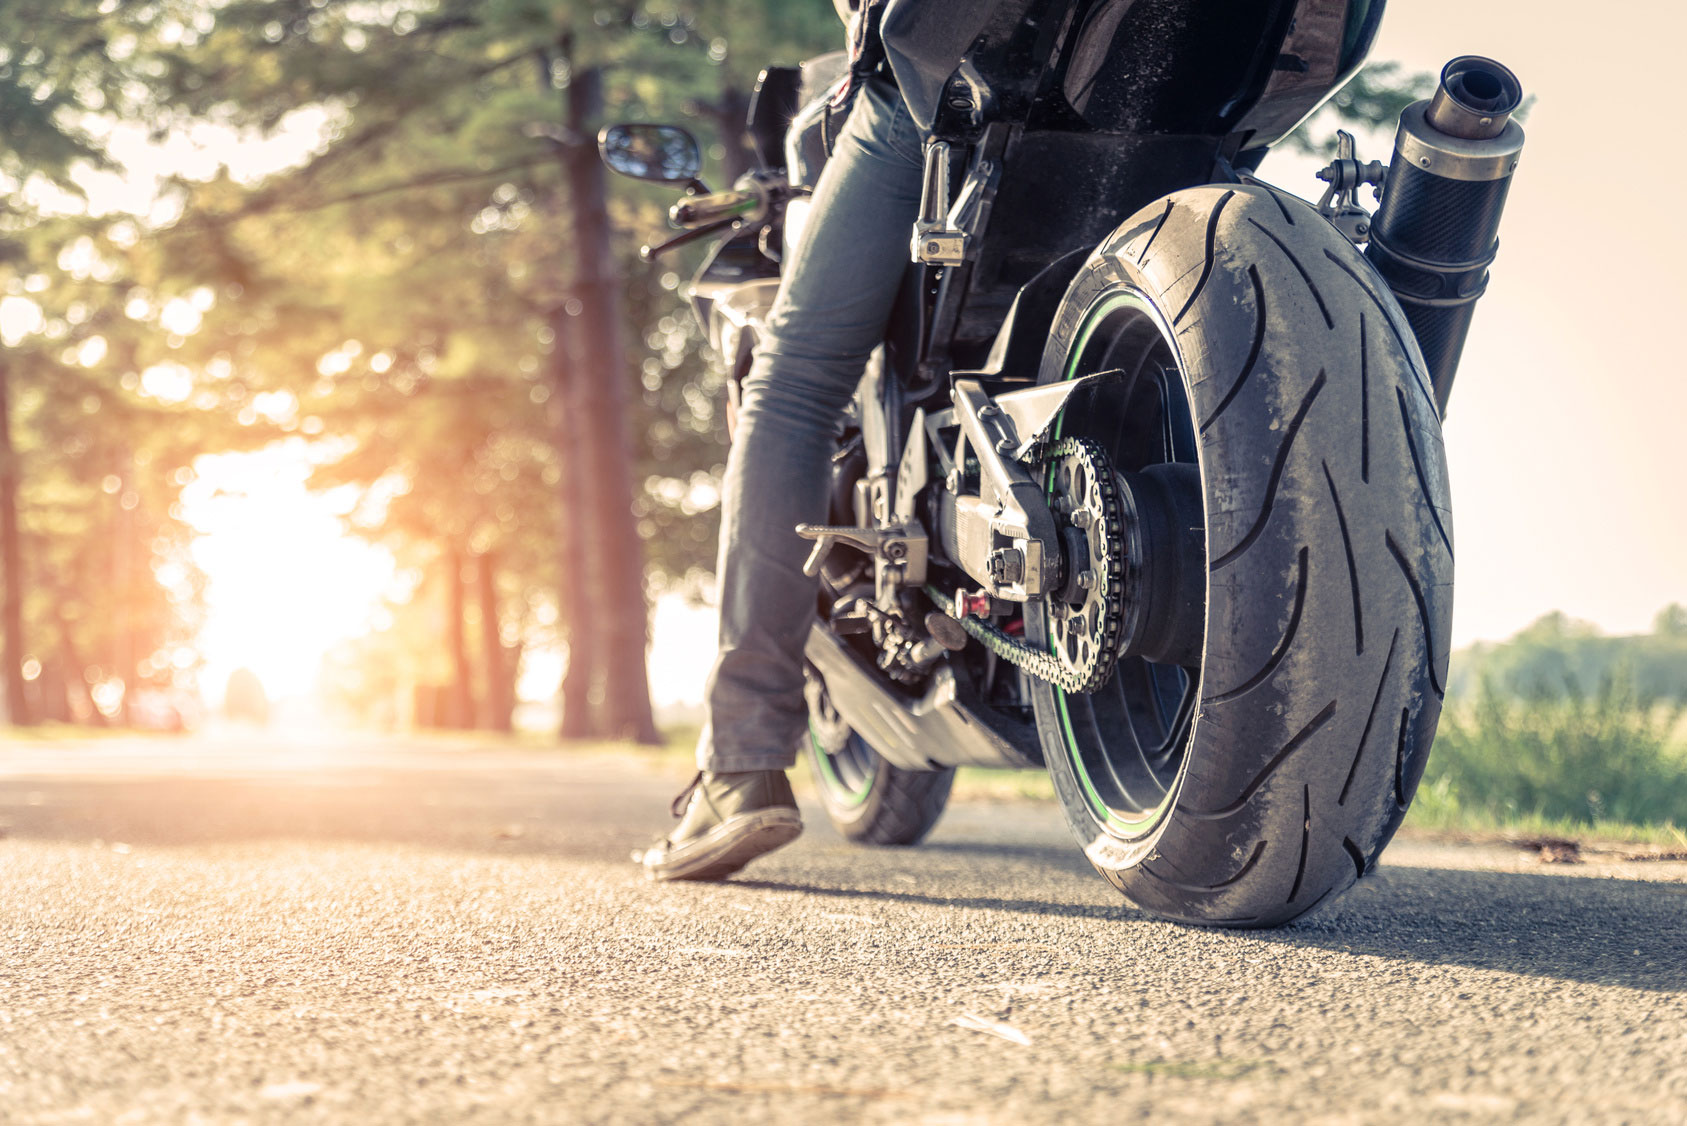 Motorcycle Insurance Basics